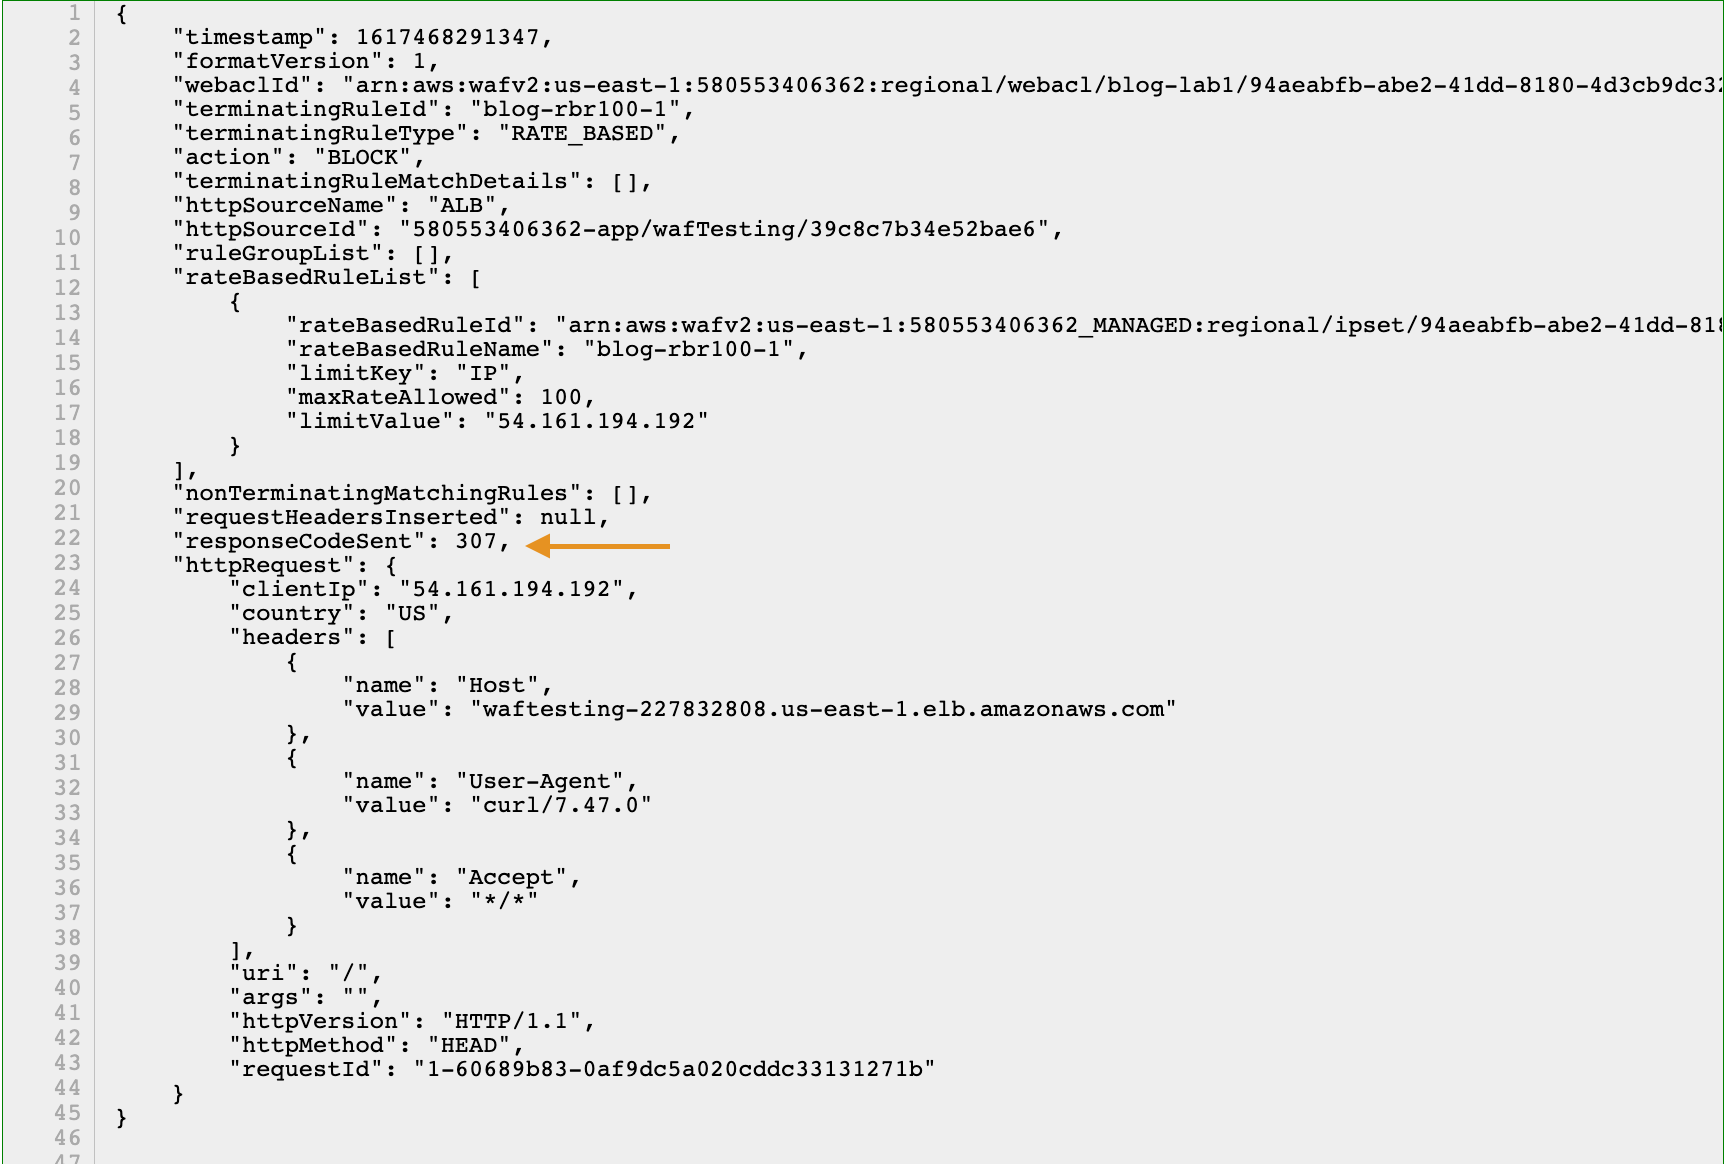 Figure 7: Verifying responseCodeSent in the AWS WAF logs